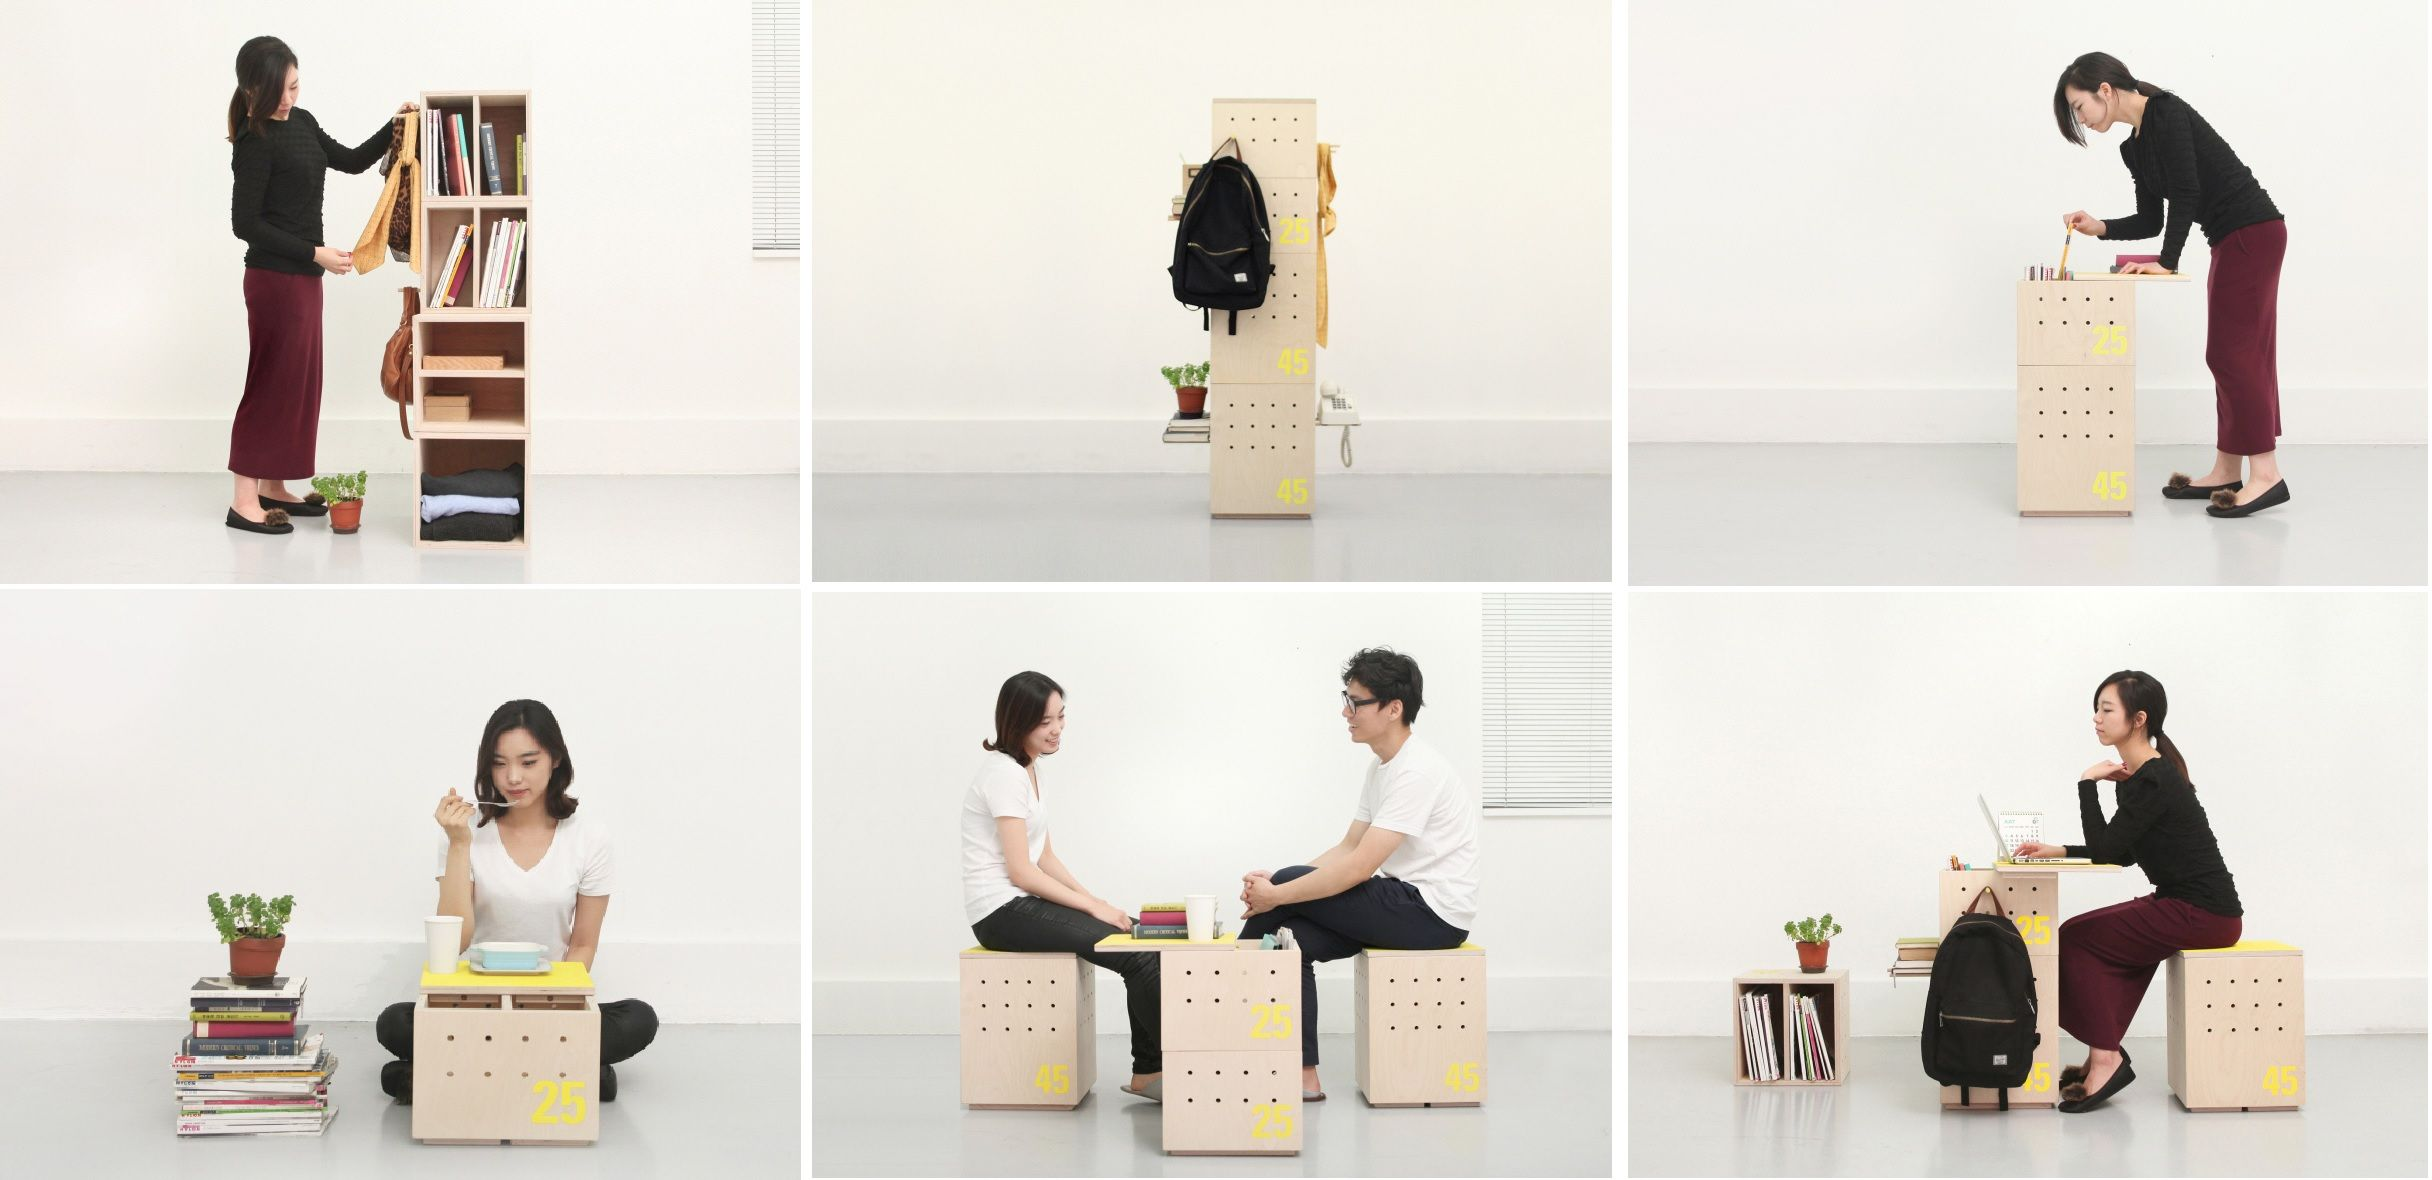 Multifunctional design for small spaces